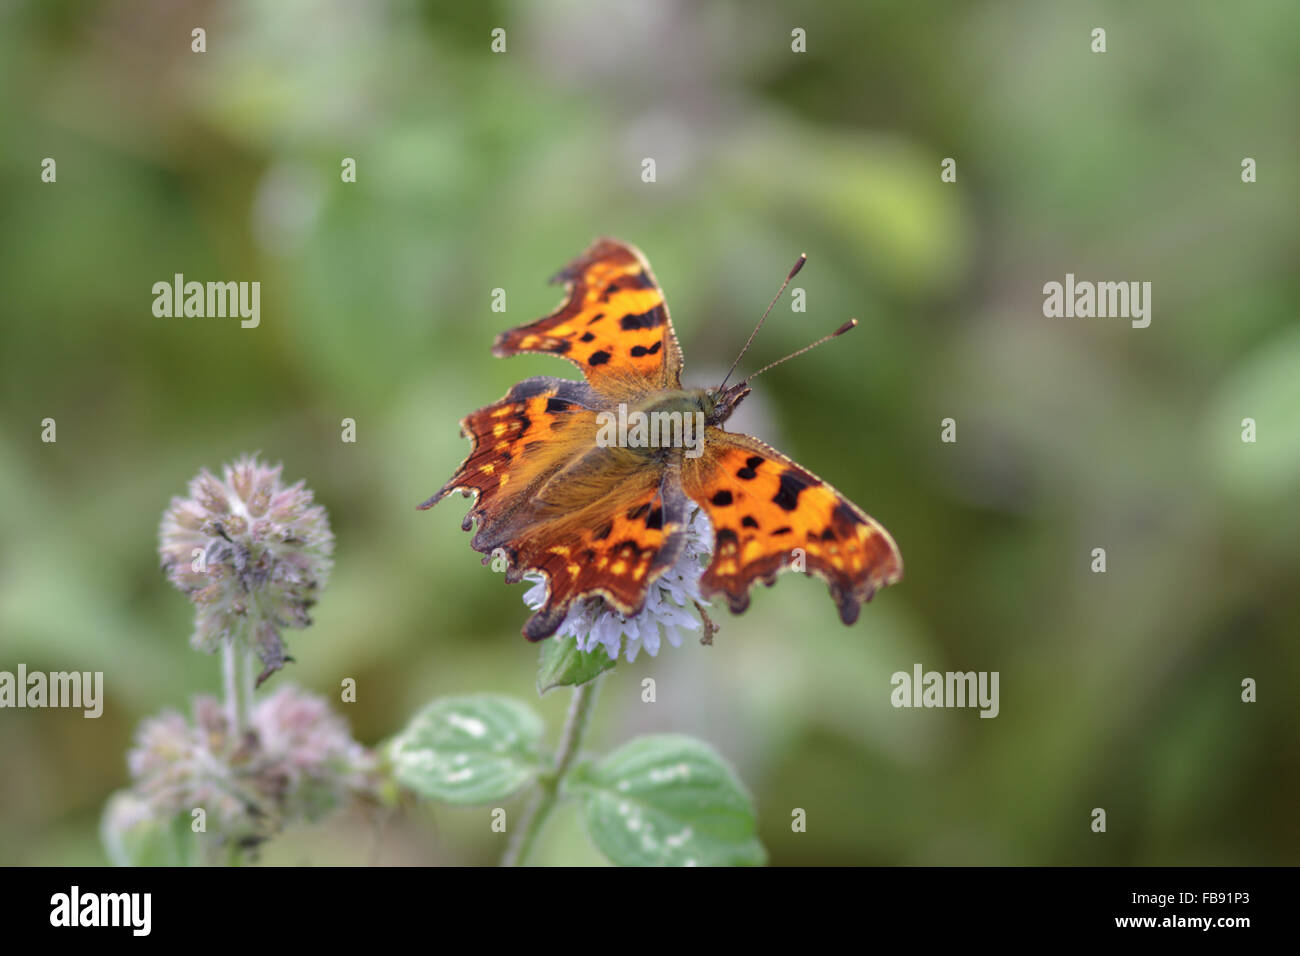 Comma butterfly perched on a flower. - Stock Image